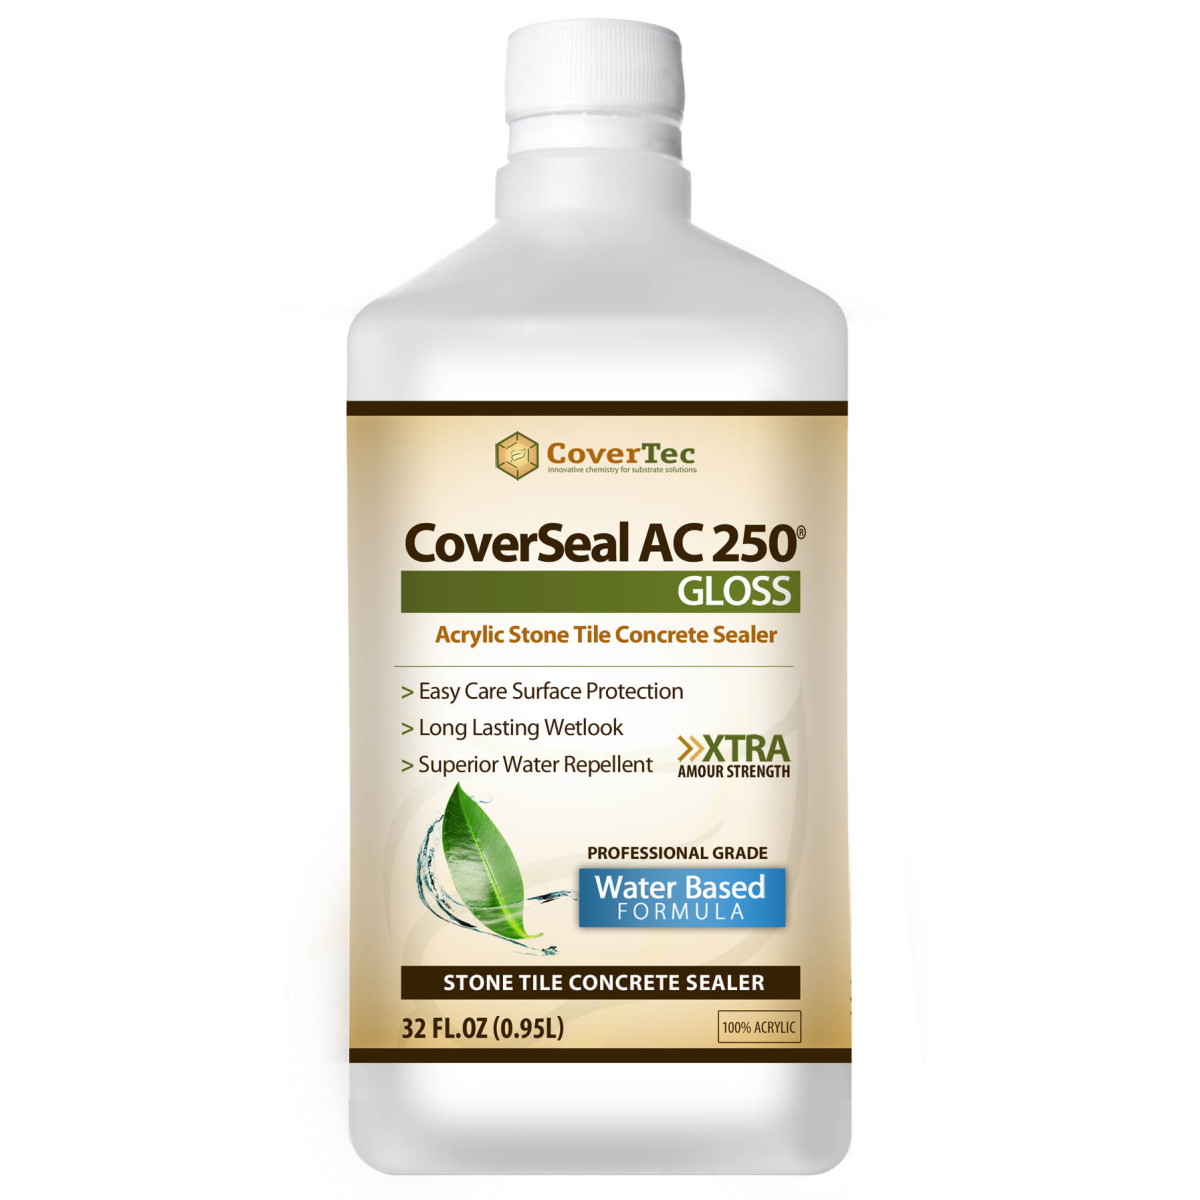 CoverSeal AC250 Gloss Clear Sealer for Ceramic, Porcelain & Stone Tile Surfaces (1 Qrt - Prof Grade)